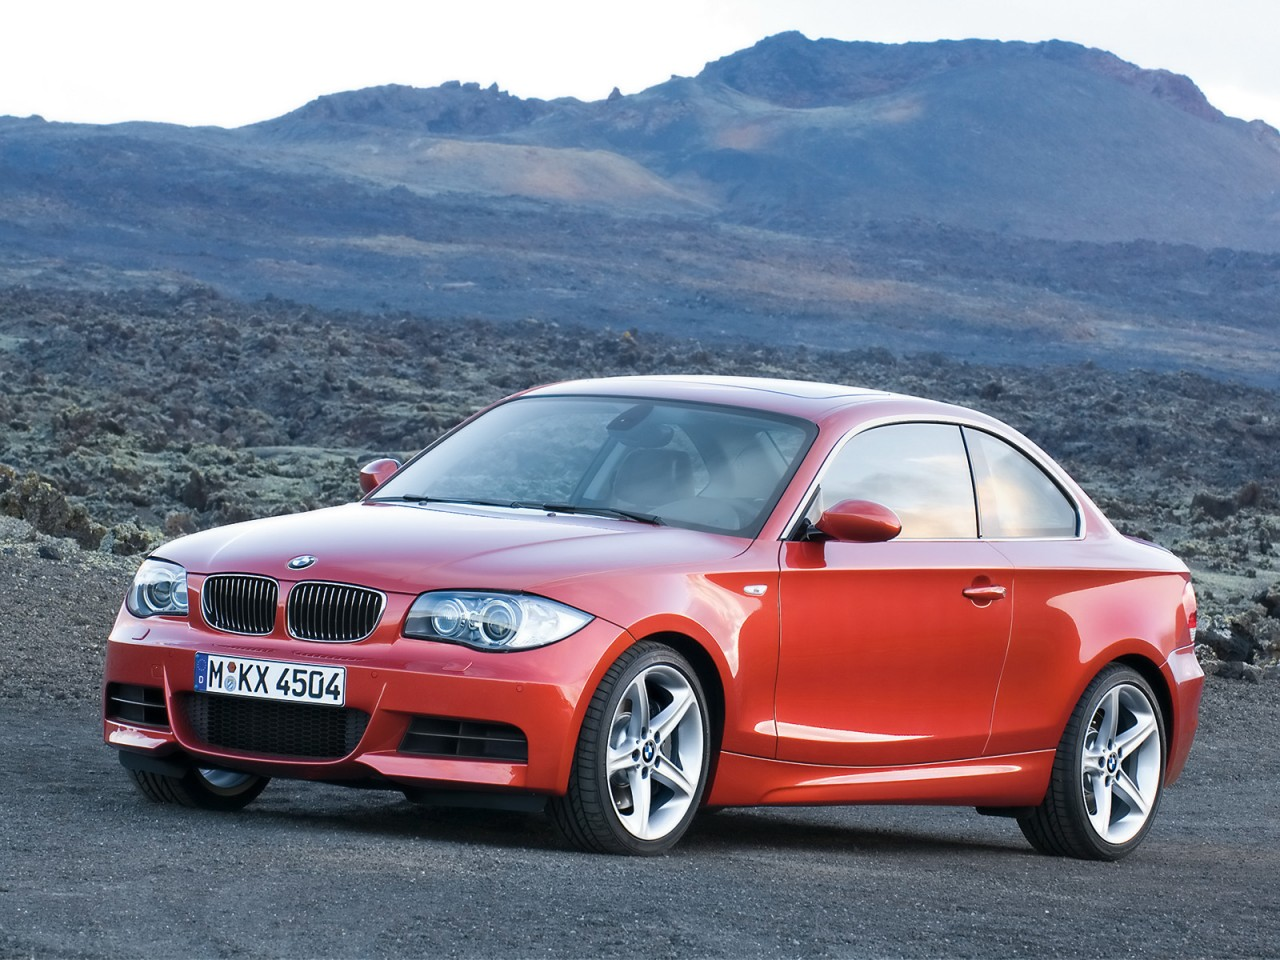 2008 bmw 135i coupe motor desktop. Black Bedroom Furniture Sets. Home Design Ideas